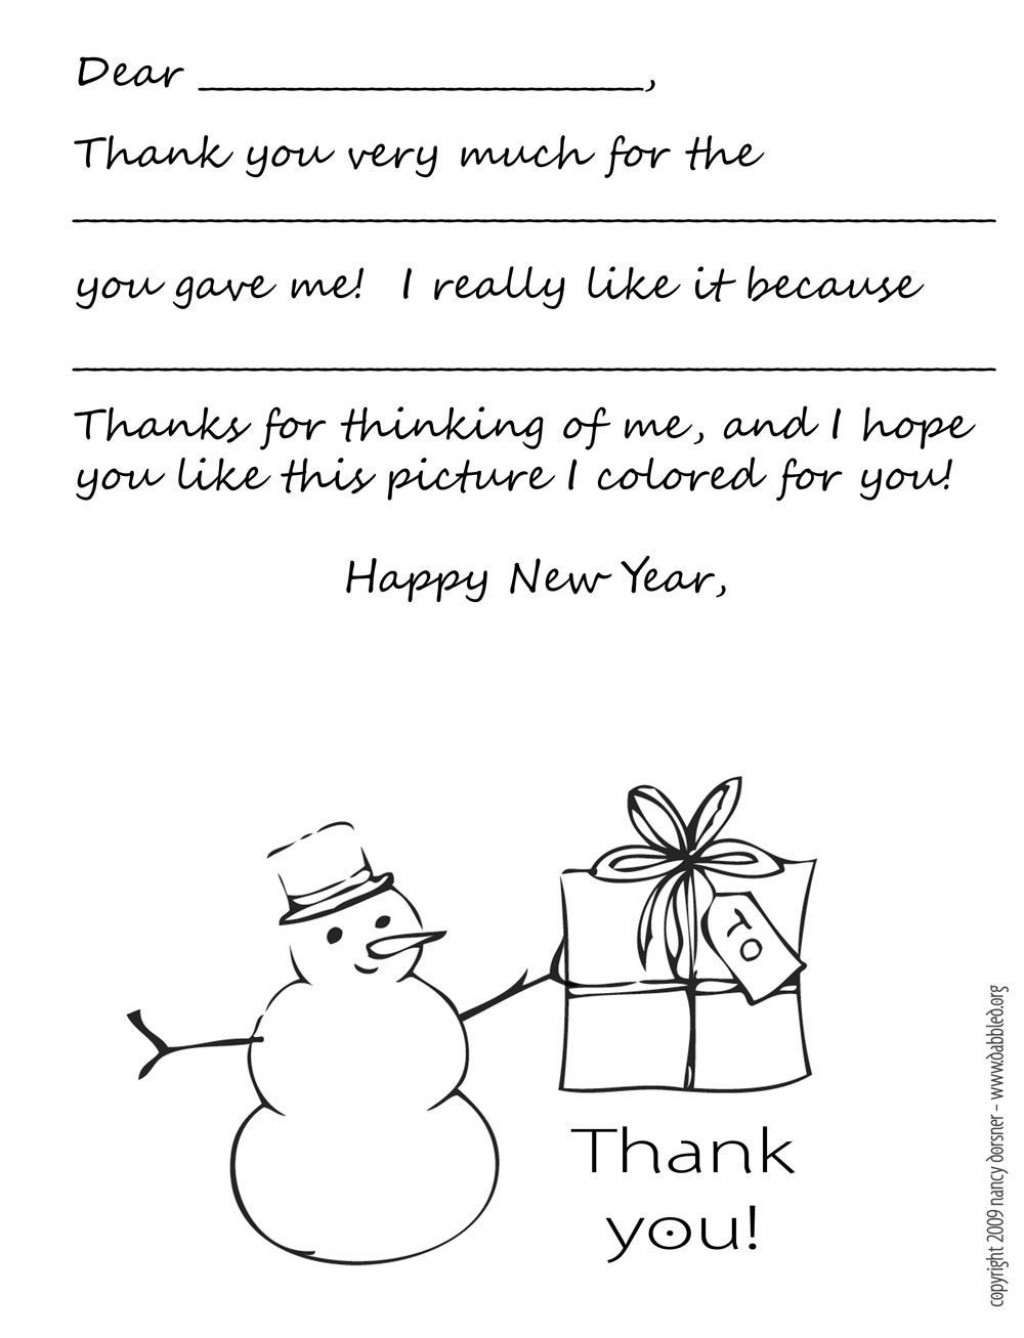 001 Magnificent Christma Thank You Note Template Free Concept  Letter CardLarge